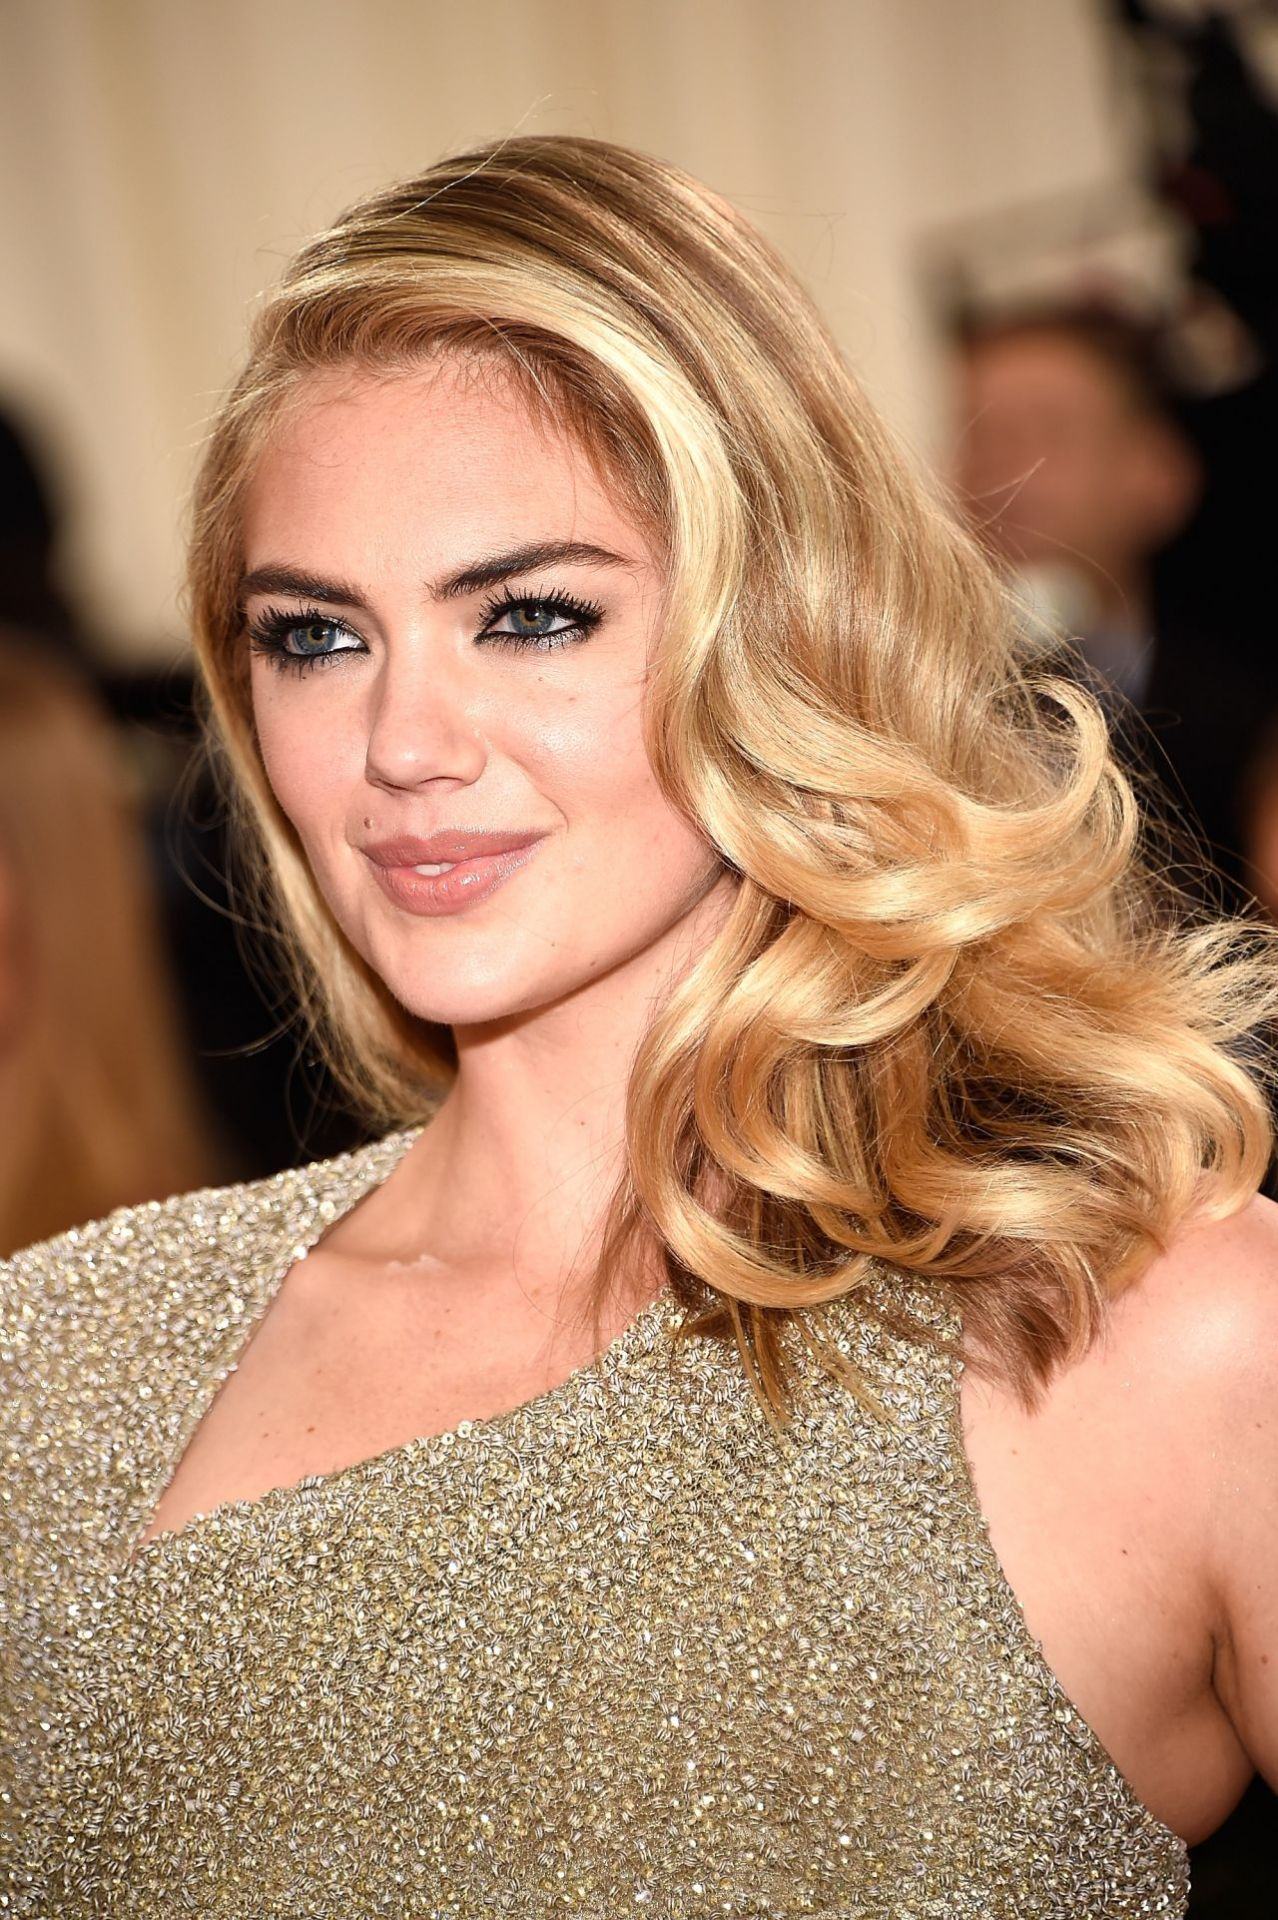 Pin On Kate Upton Official